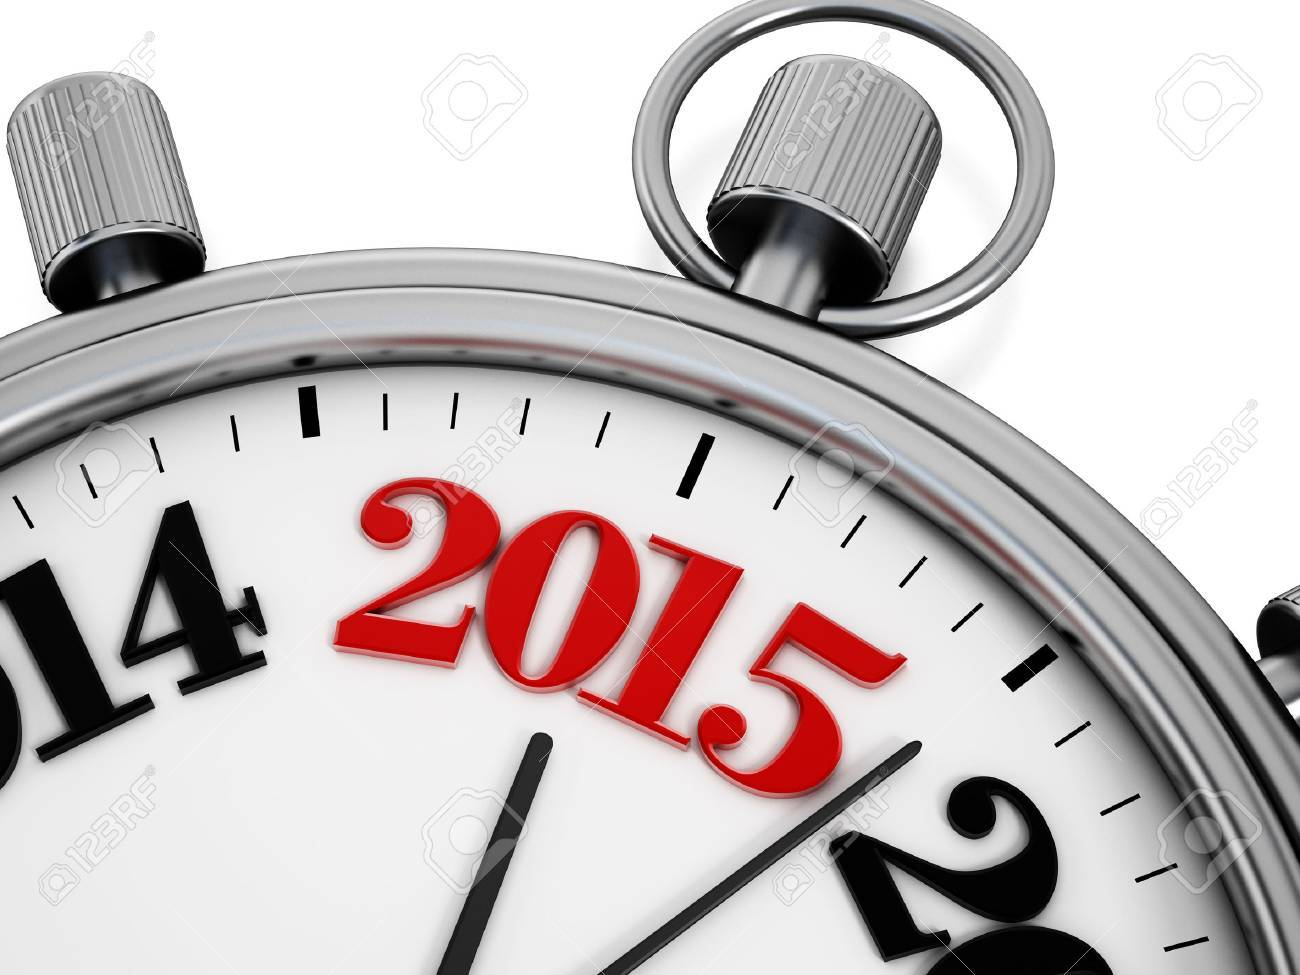 Countdown to new year 2015 concept. Stock Photo - 31780372